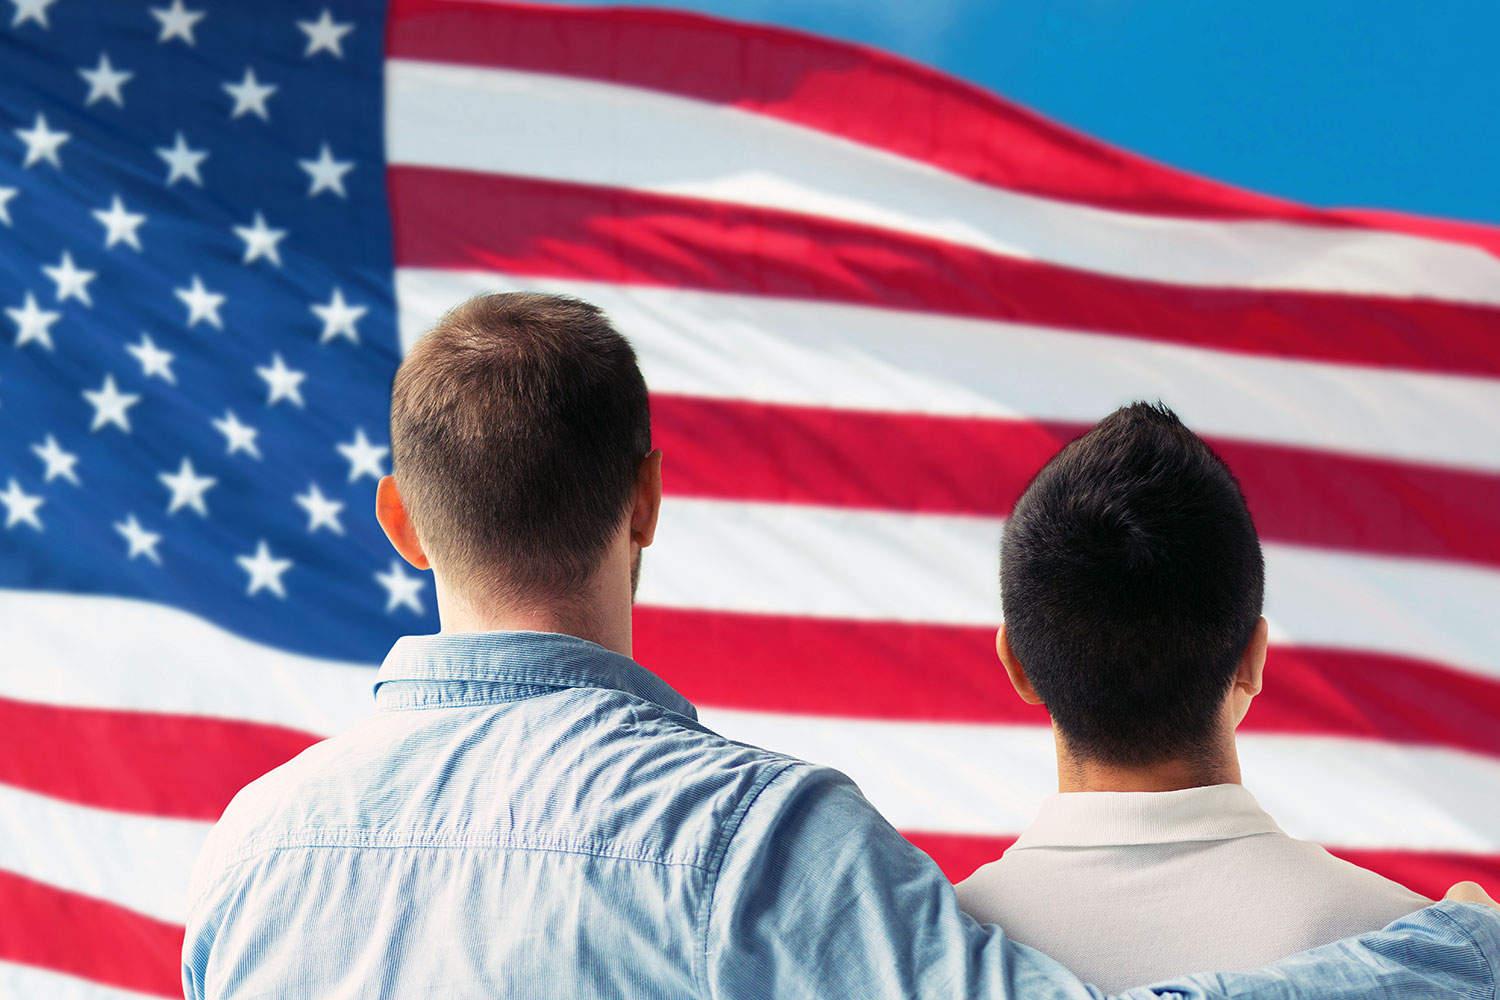 U.S. Immigration Changes Its Policy On Same-Sex Couples